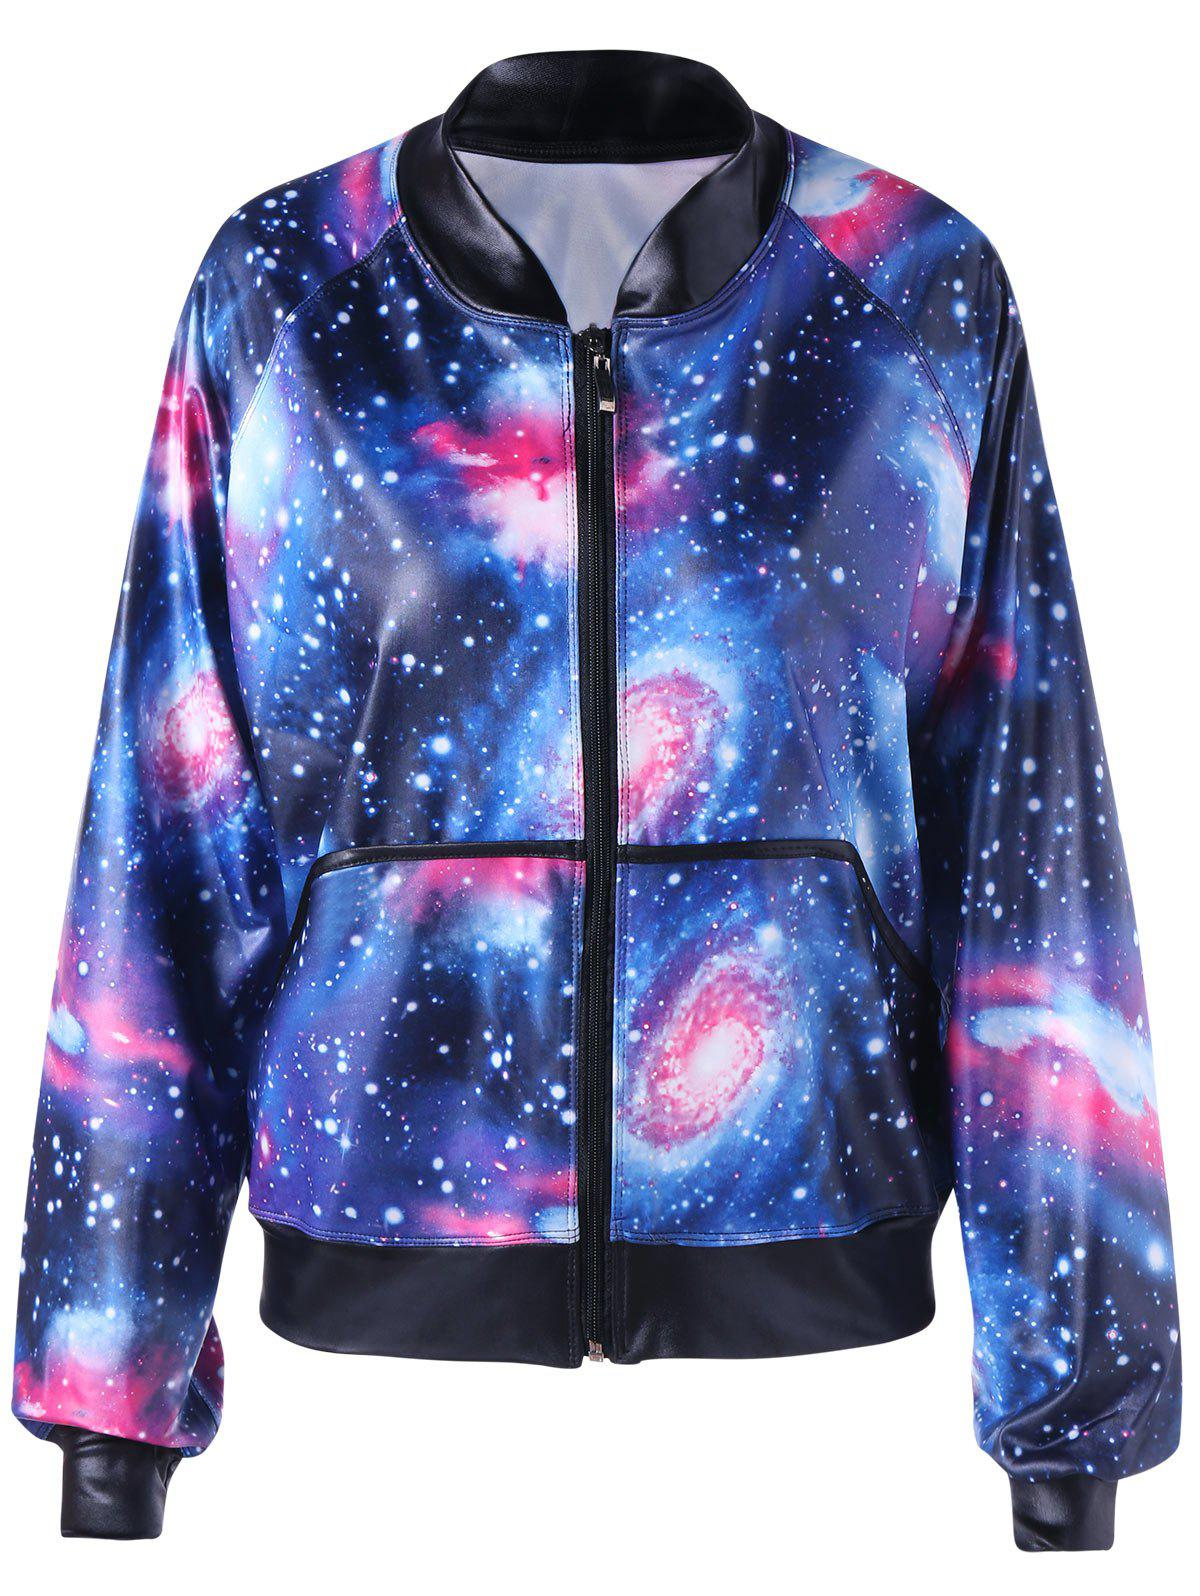 Online Raglan Sleeve Zip Up Galaxy Jacket